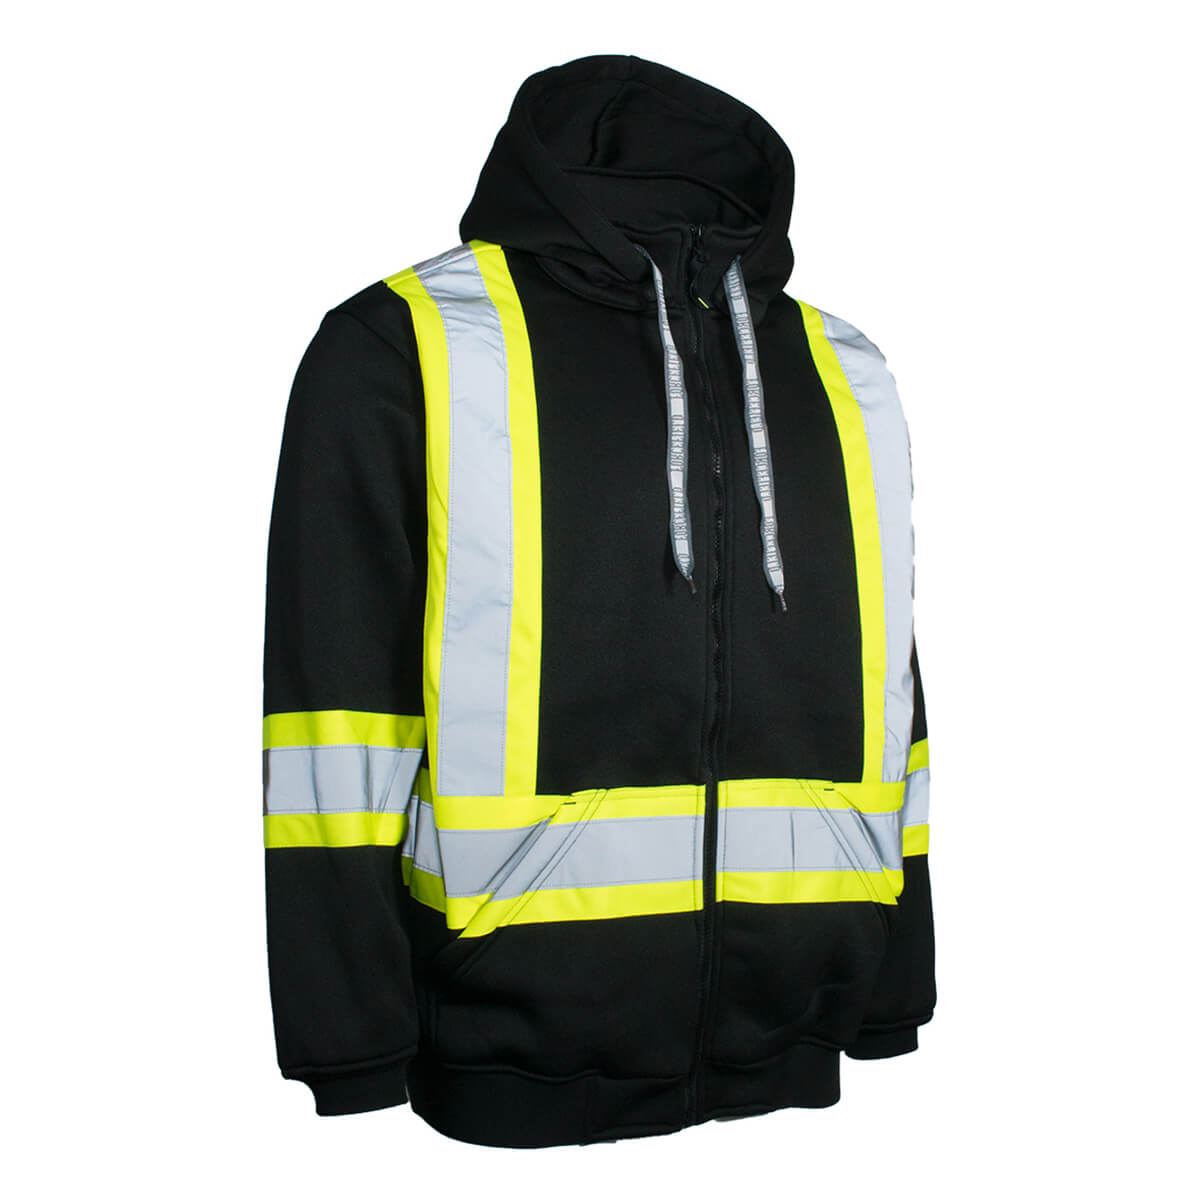 Forcefield Reflective Hoody With Removable Hood